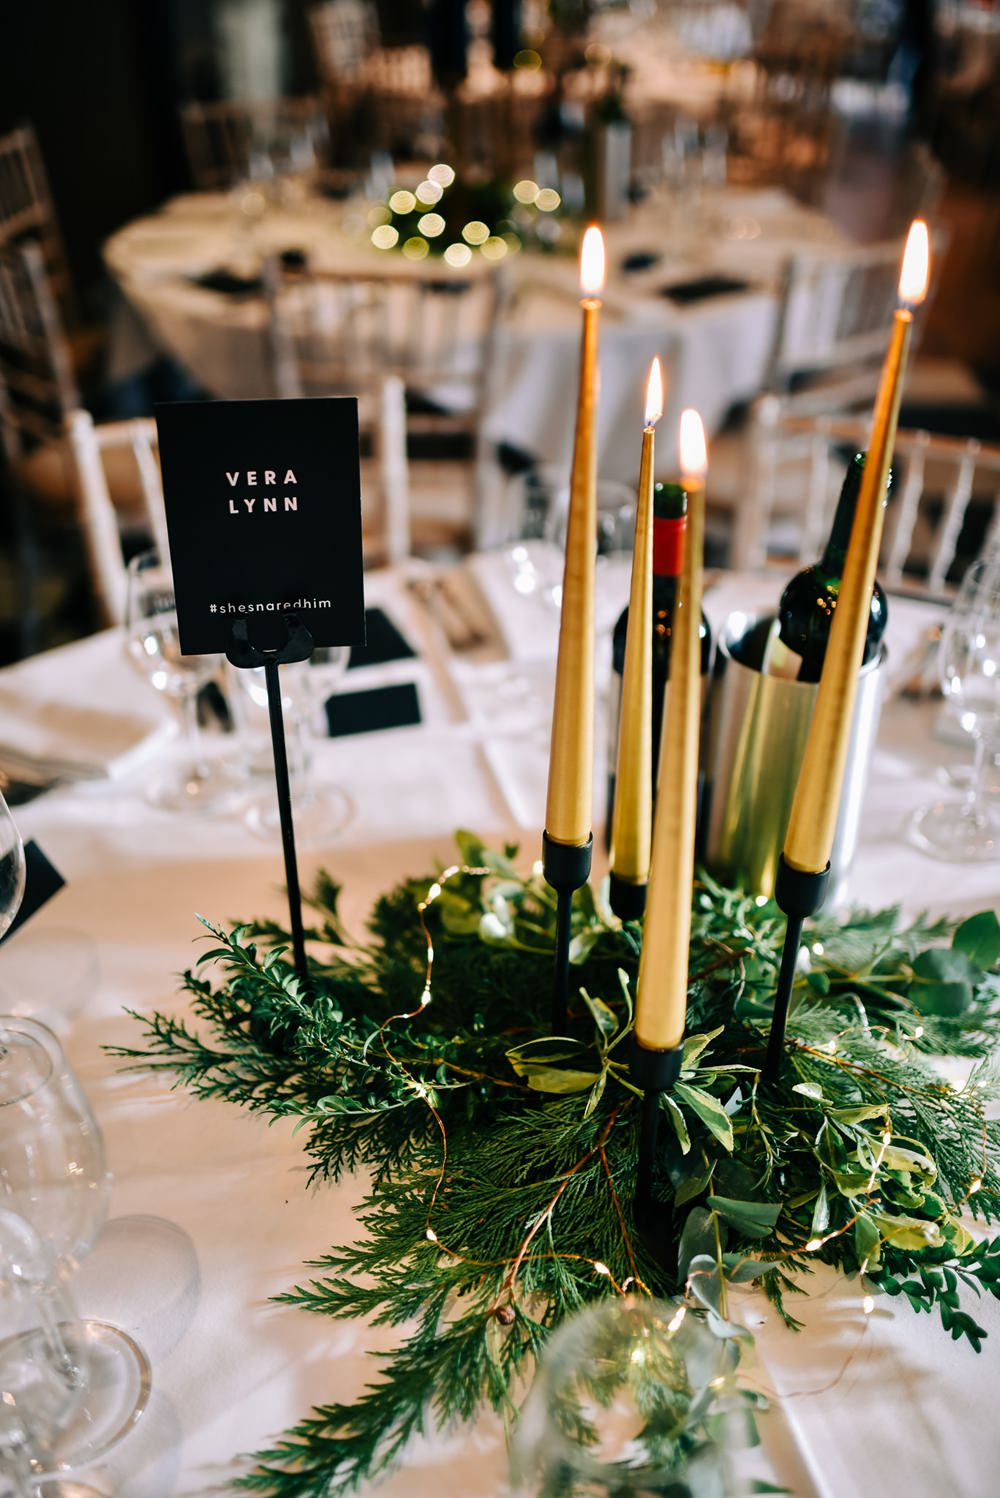 Black White Table Name Gold Candles Table Decor Centrepiece Glazebrook House Wedding Harriet Bird Photography